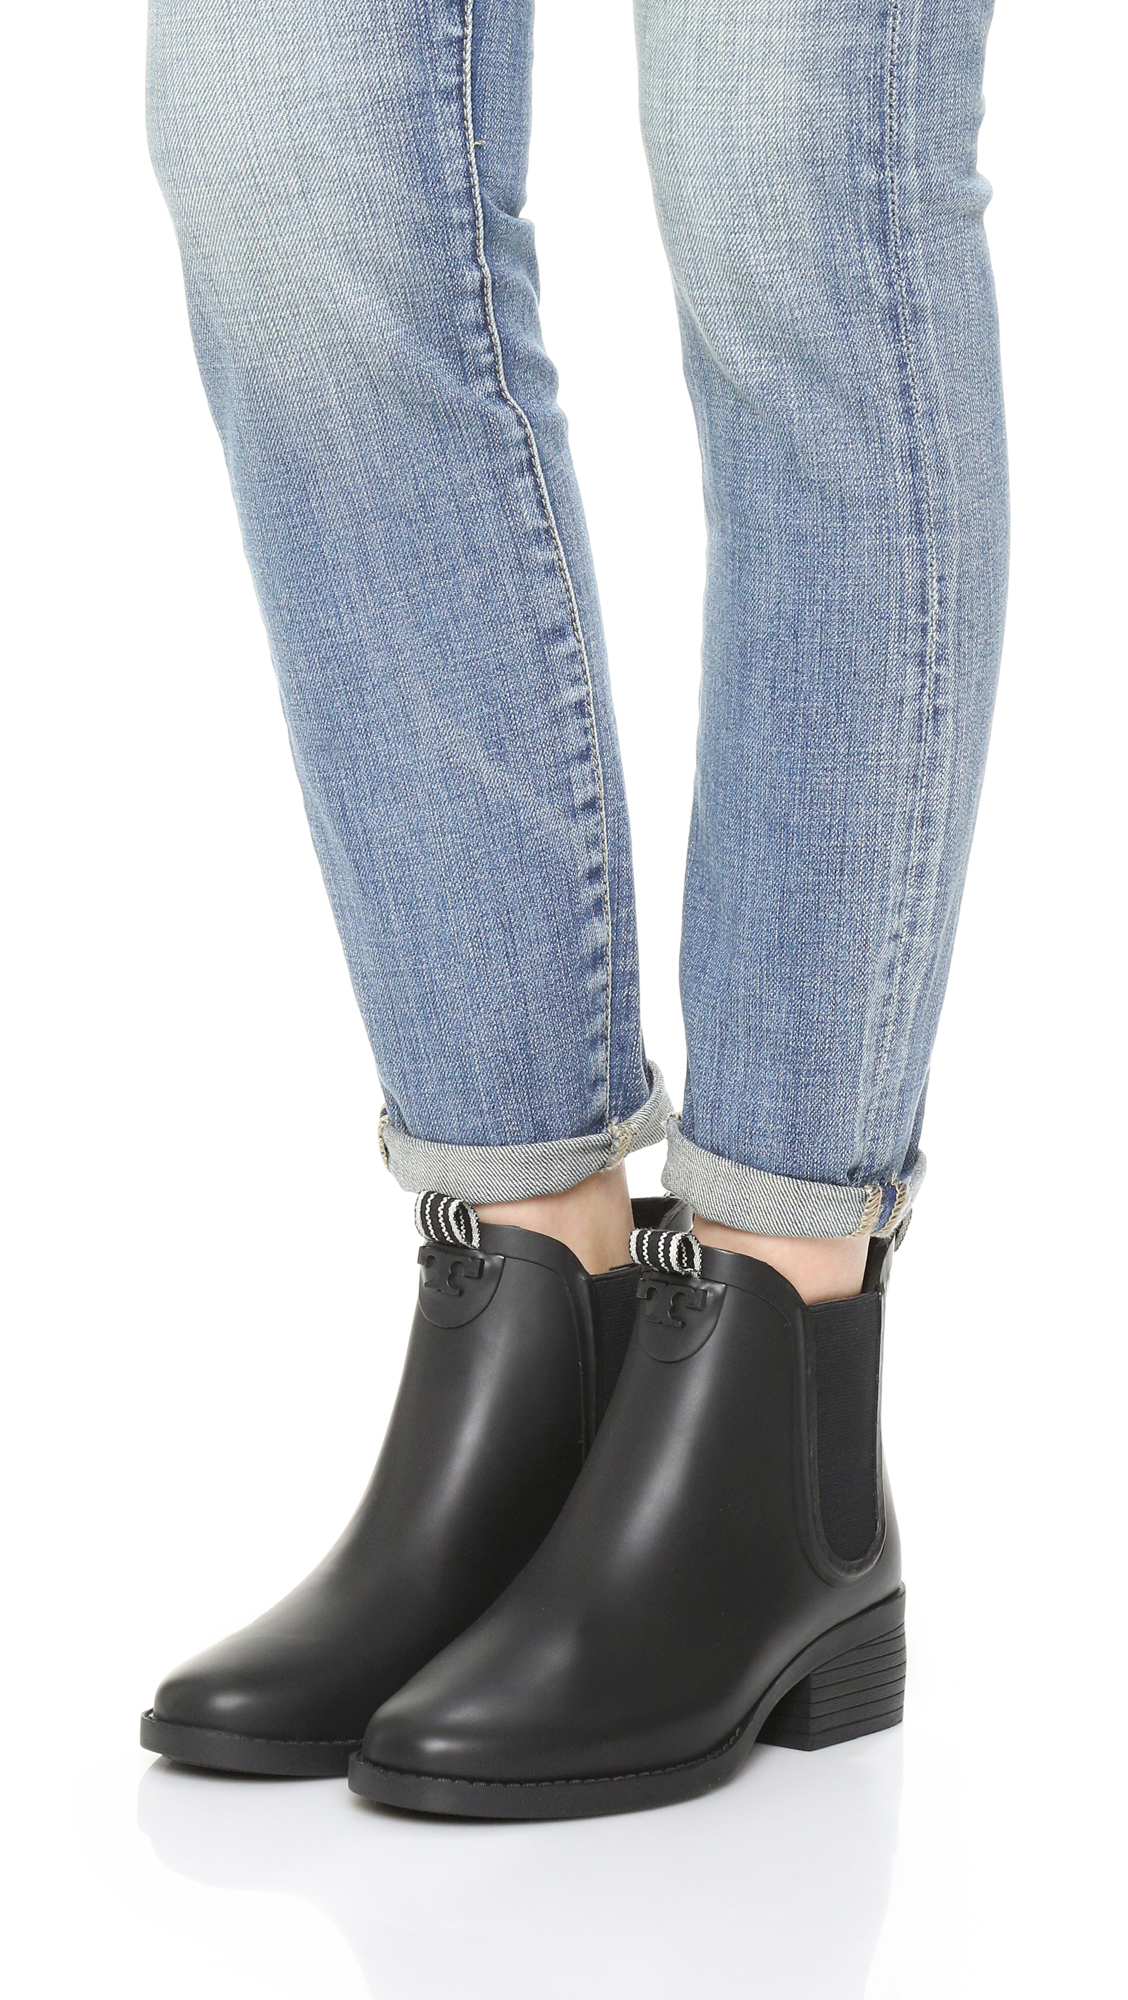 ee5d4ea20bc748 spain tory burch. womens black classic rain boots 3a808 ffbe8  new arrivals tory  burch classic rain booties shopbop save up to 25 use code stockup18 1b5f7